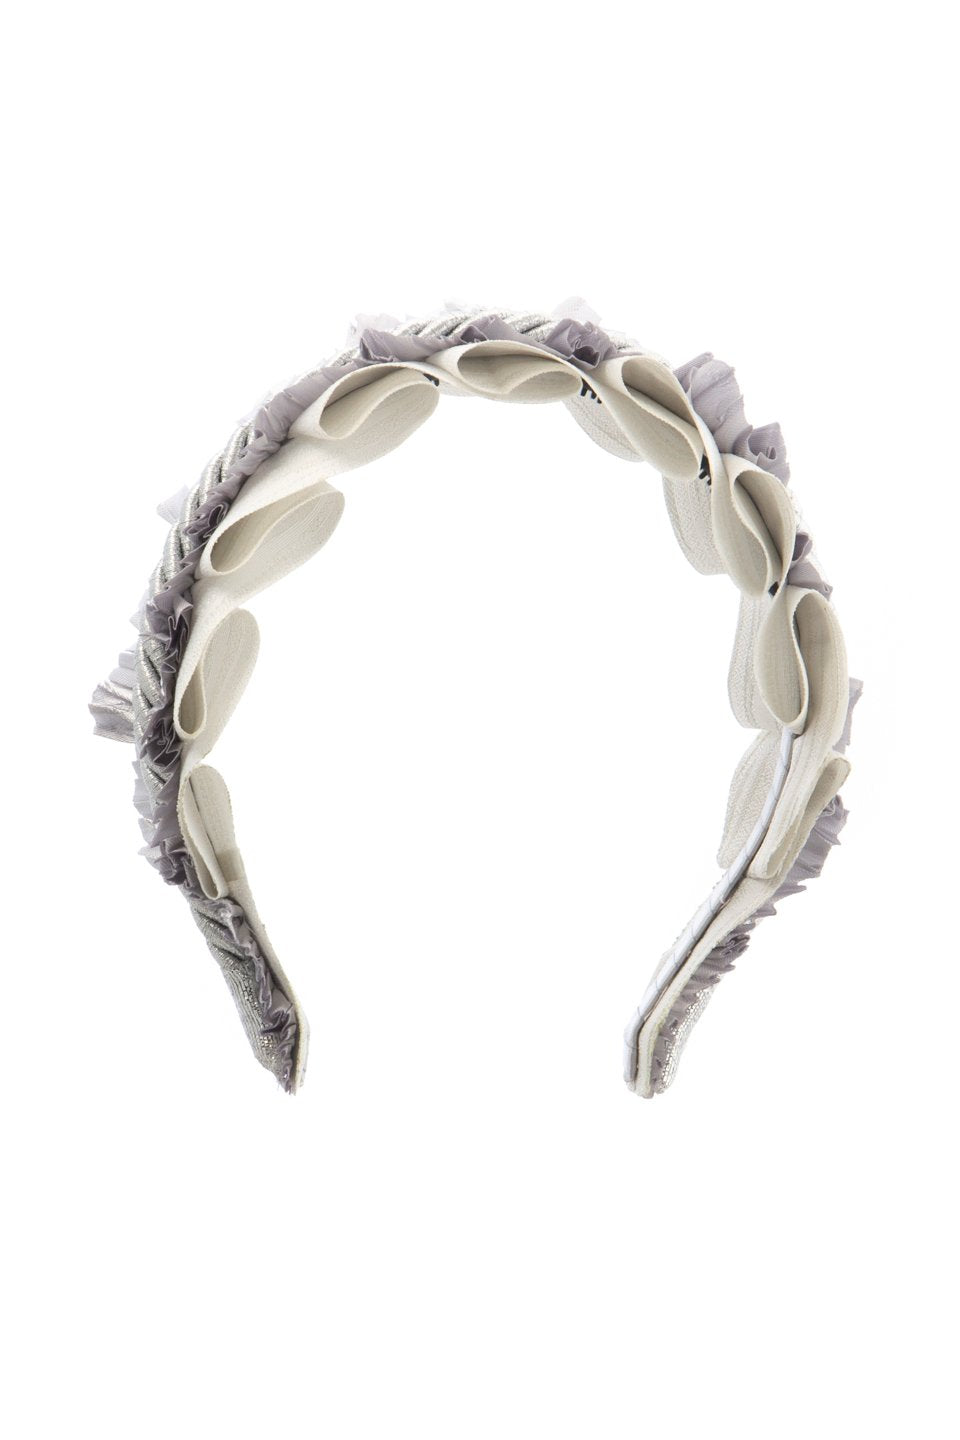 Layered Headband - Light Grey/Silver - PROJECT 6, modest fashion